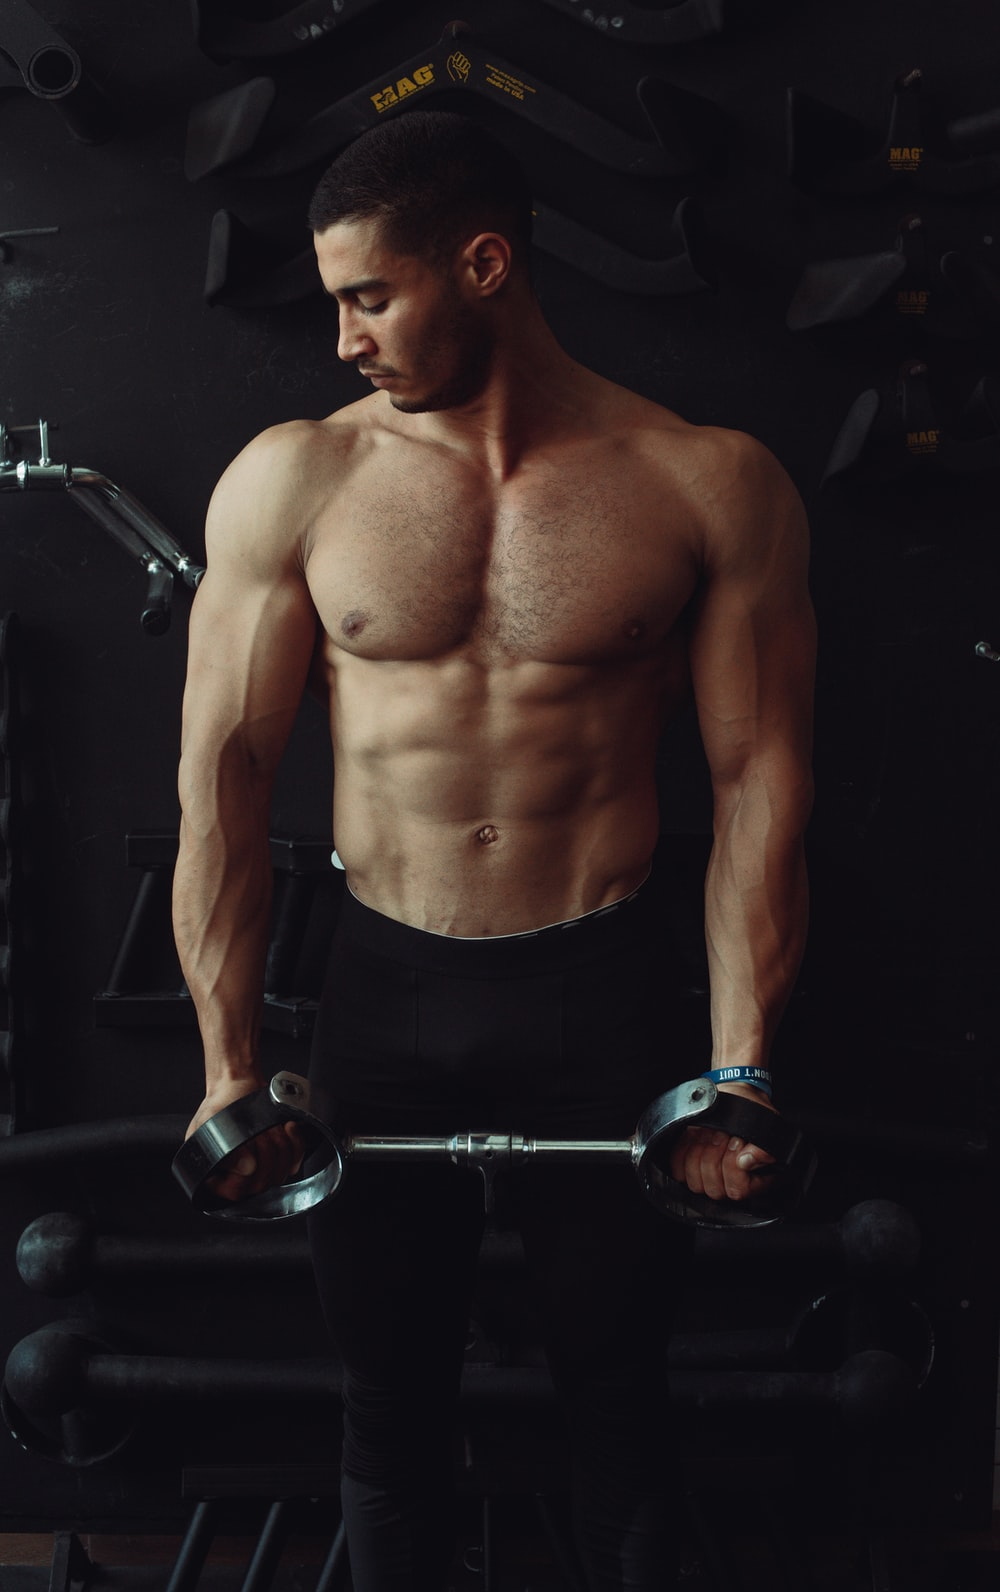 topless man in black shorts holding black and silver dumbbell